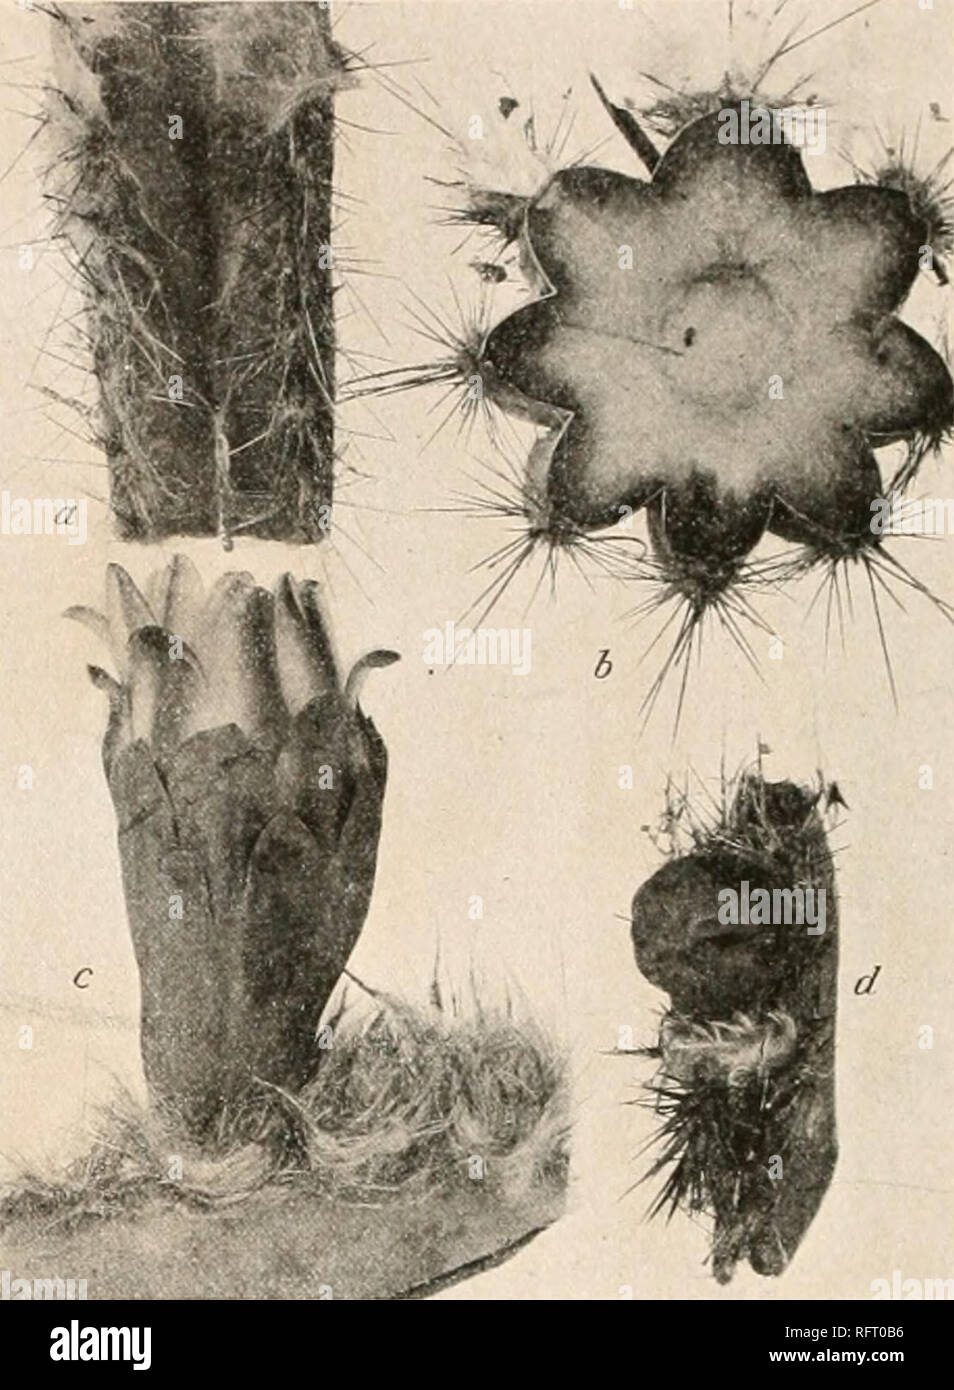 . Carnegie Institution of Washington publication. Till' CACTACEAE. hi our original description we referred here specimens from northern Colombia which wr now include in ( V/n/;<//< crciis russelianus. Illustrations: Contr. U. S. Nat. Herb. 12: pi. 62, 63. l:ii;nrc 82 is from a photograph of the plant; figure 83 a shows a piece of the stem; figure S3 & a cross-section of the stem; figure 83 c a flower; and figure 83 J a flower-bud; all are from photographs of the type specimen by Henry Pittier. '• 44. Cephalocereus purpusii sp. nov. Stems slender, 2 to 3 meters high, sim- ple or more  - Stock Image